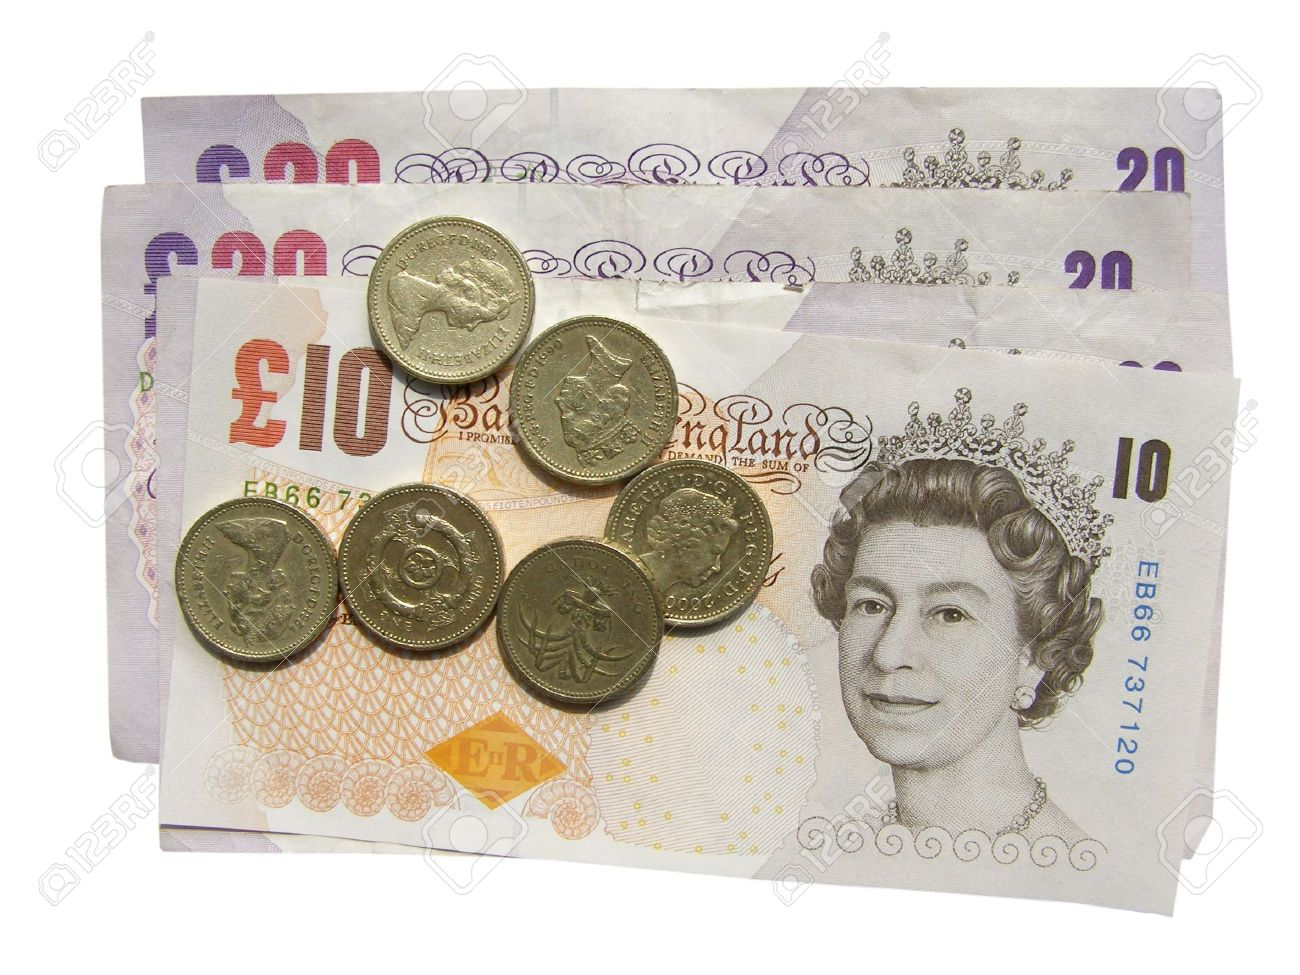 3424305-British-Pounds-banknotes-and-coins-Stock-Photo-pounds